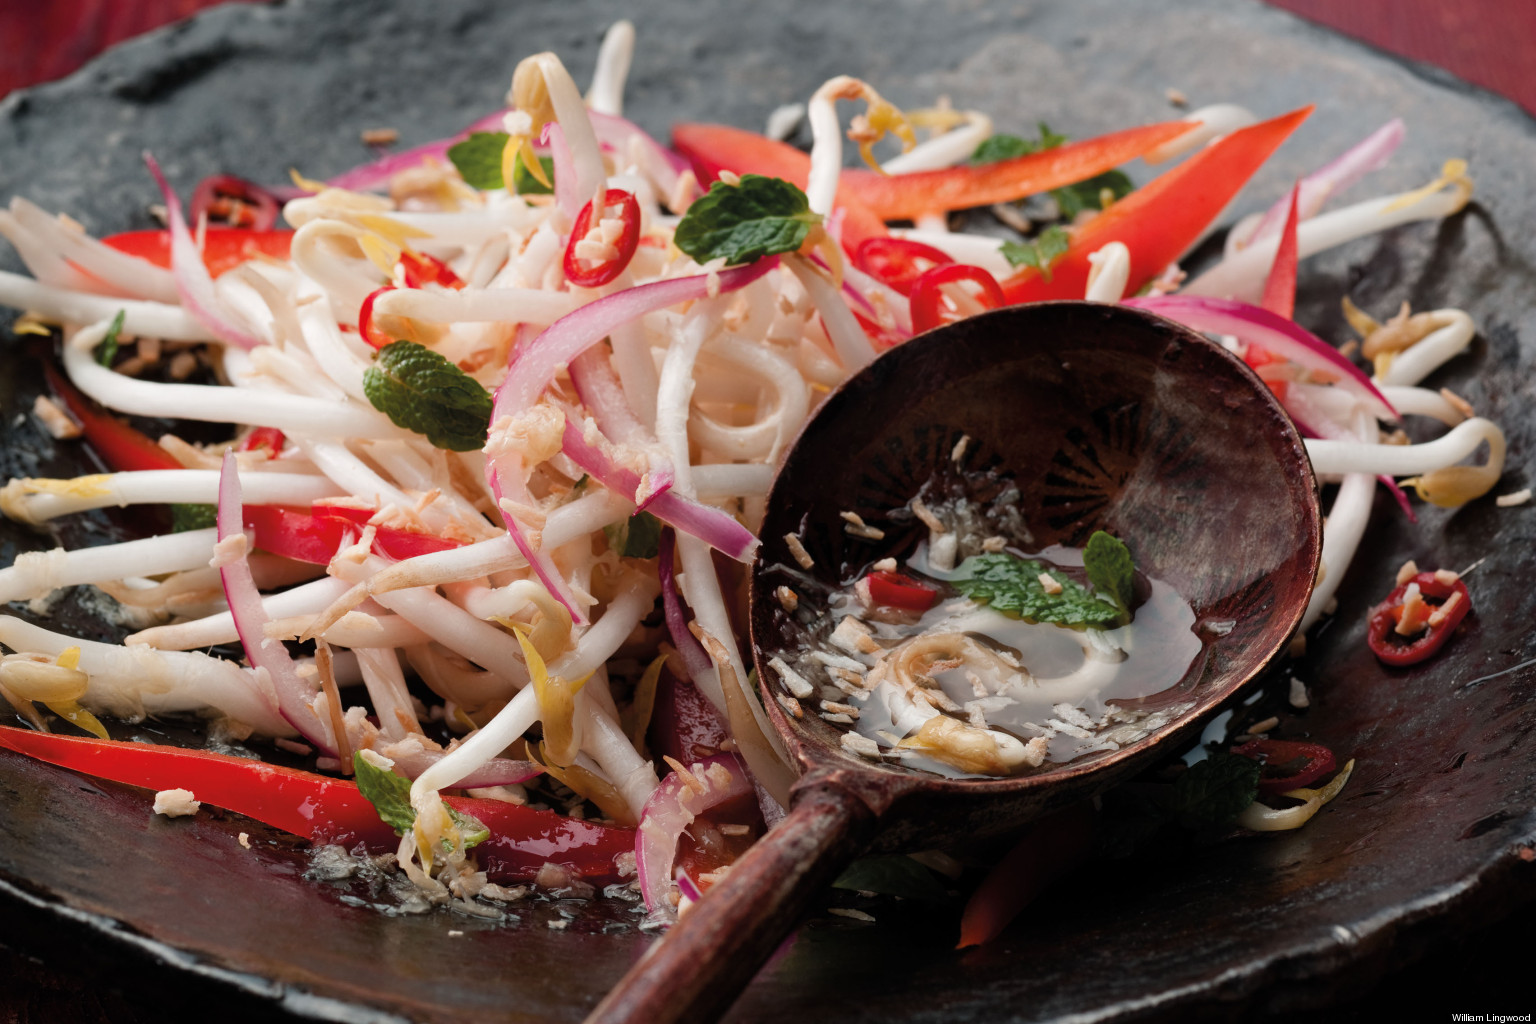 Malaysian Coconut And Chili Kerabu Salad | HuffPost